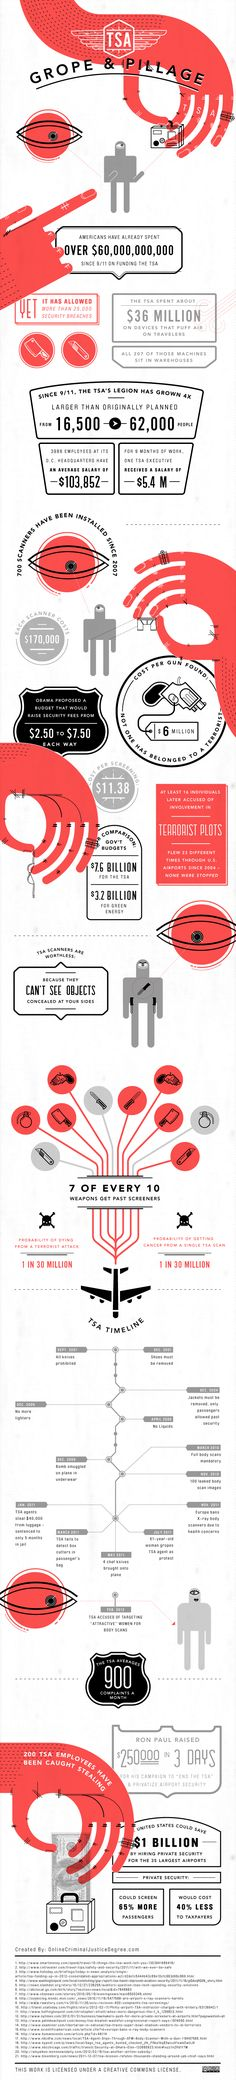 Grope and Pillage / TSA waste infographic #infographic #graphic_design